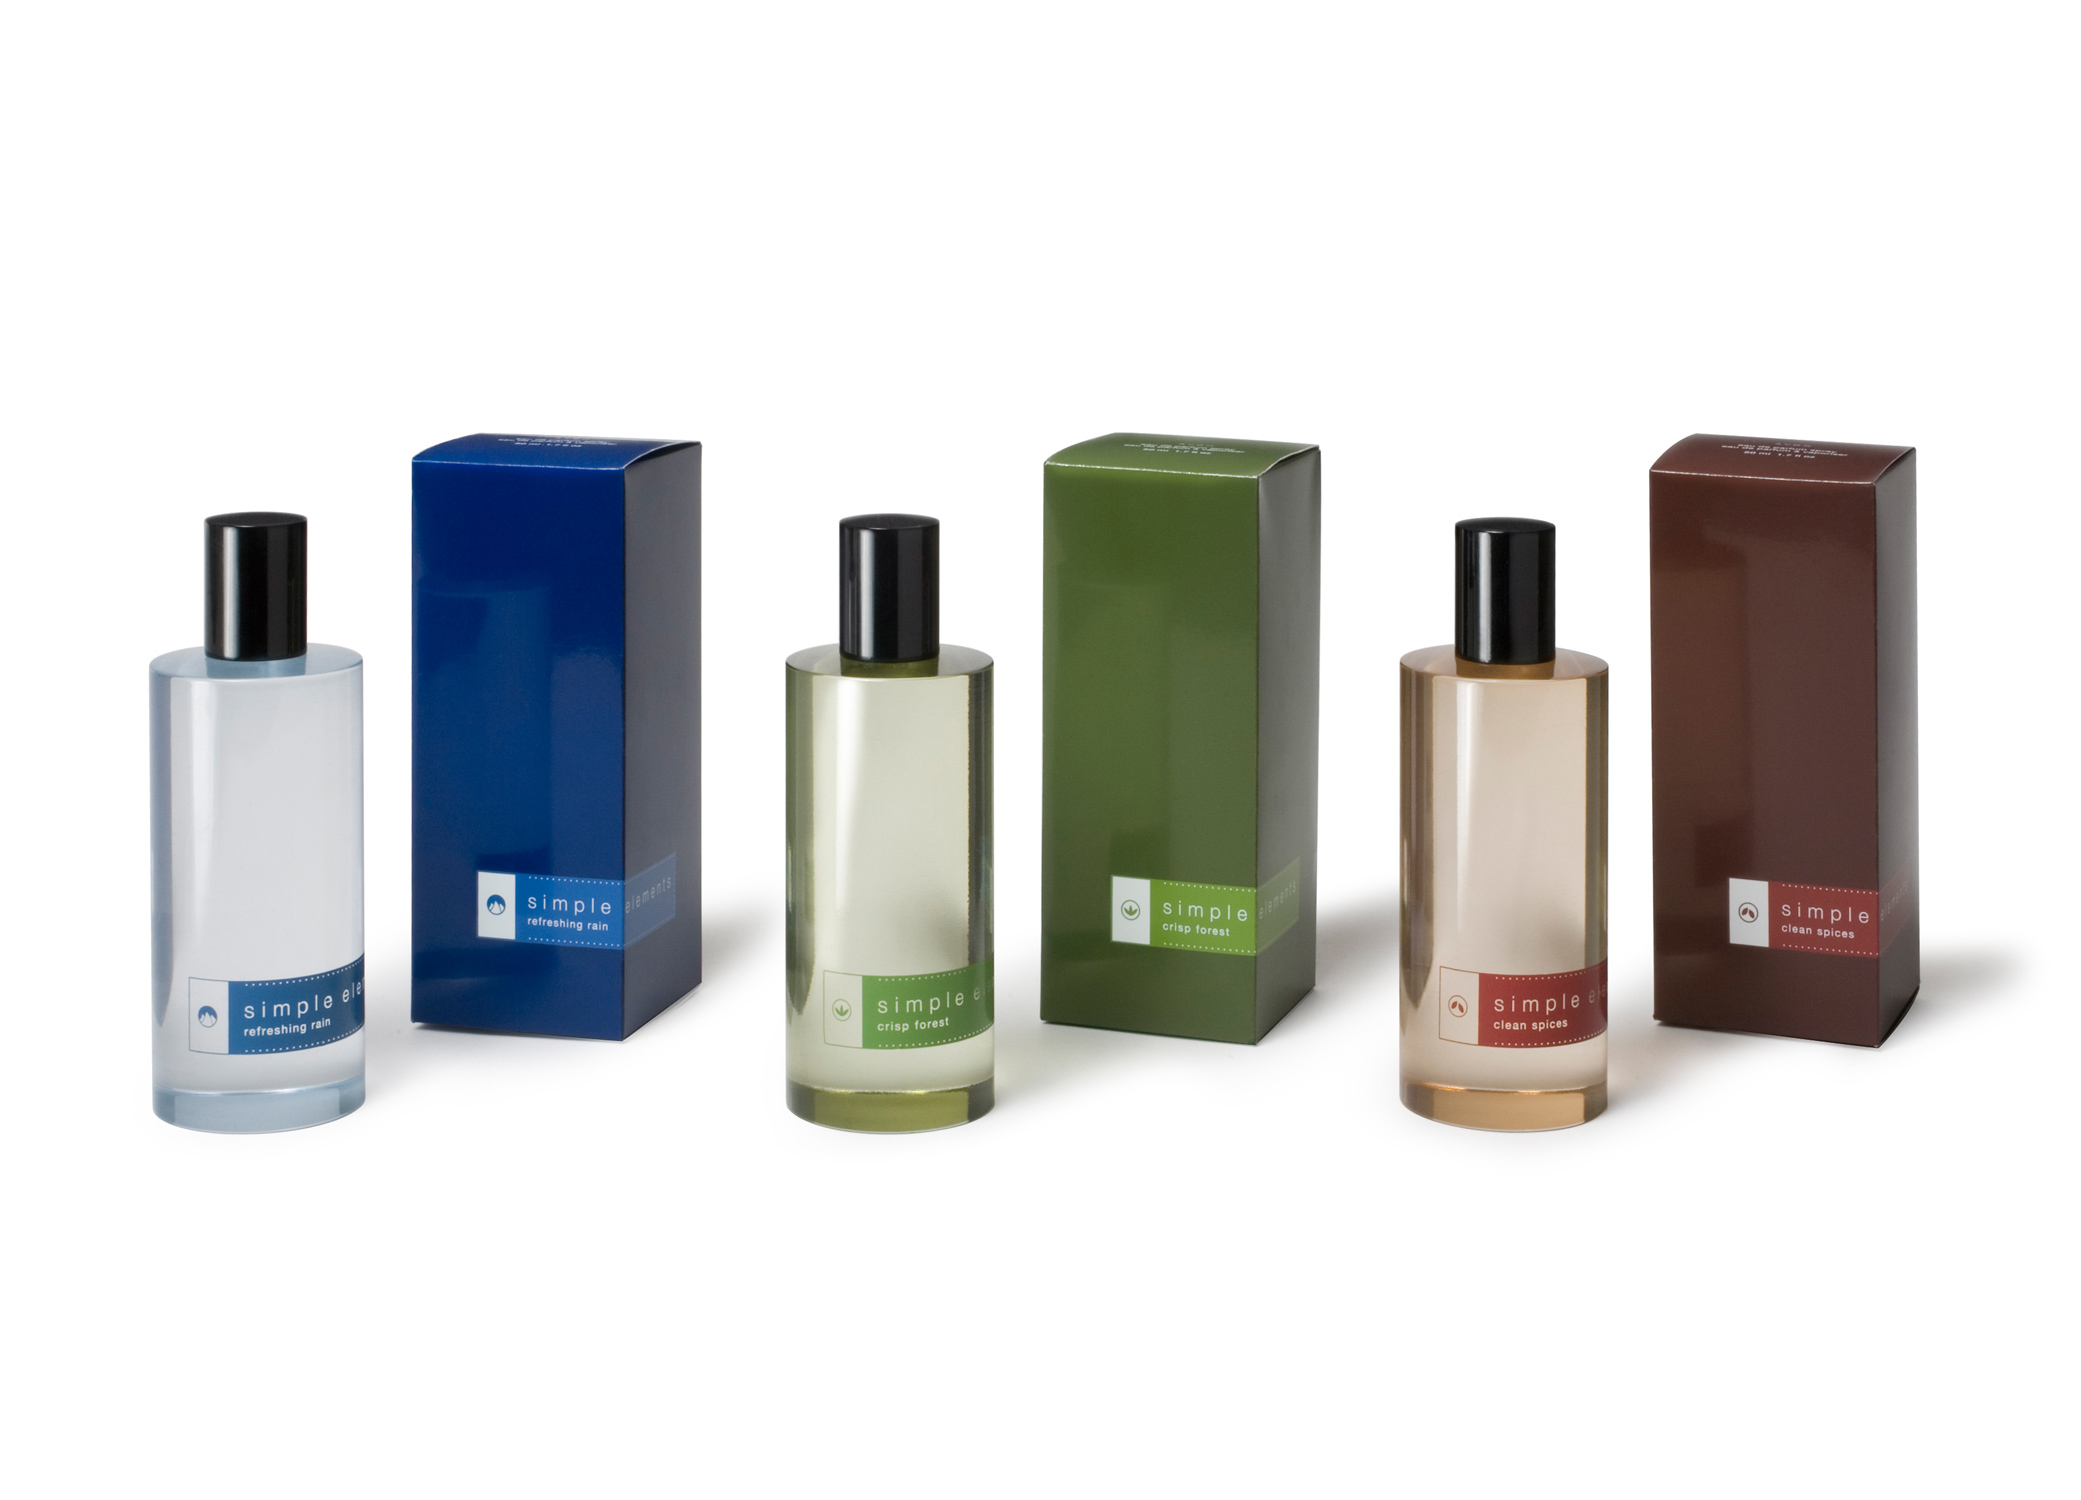 Avon Simple Elements perfume cosmetic packaging design with transparent bottles and dark blue, green and red labels.